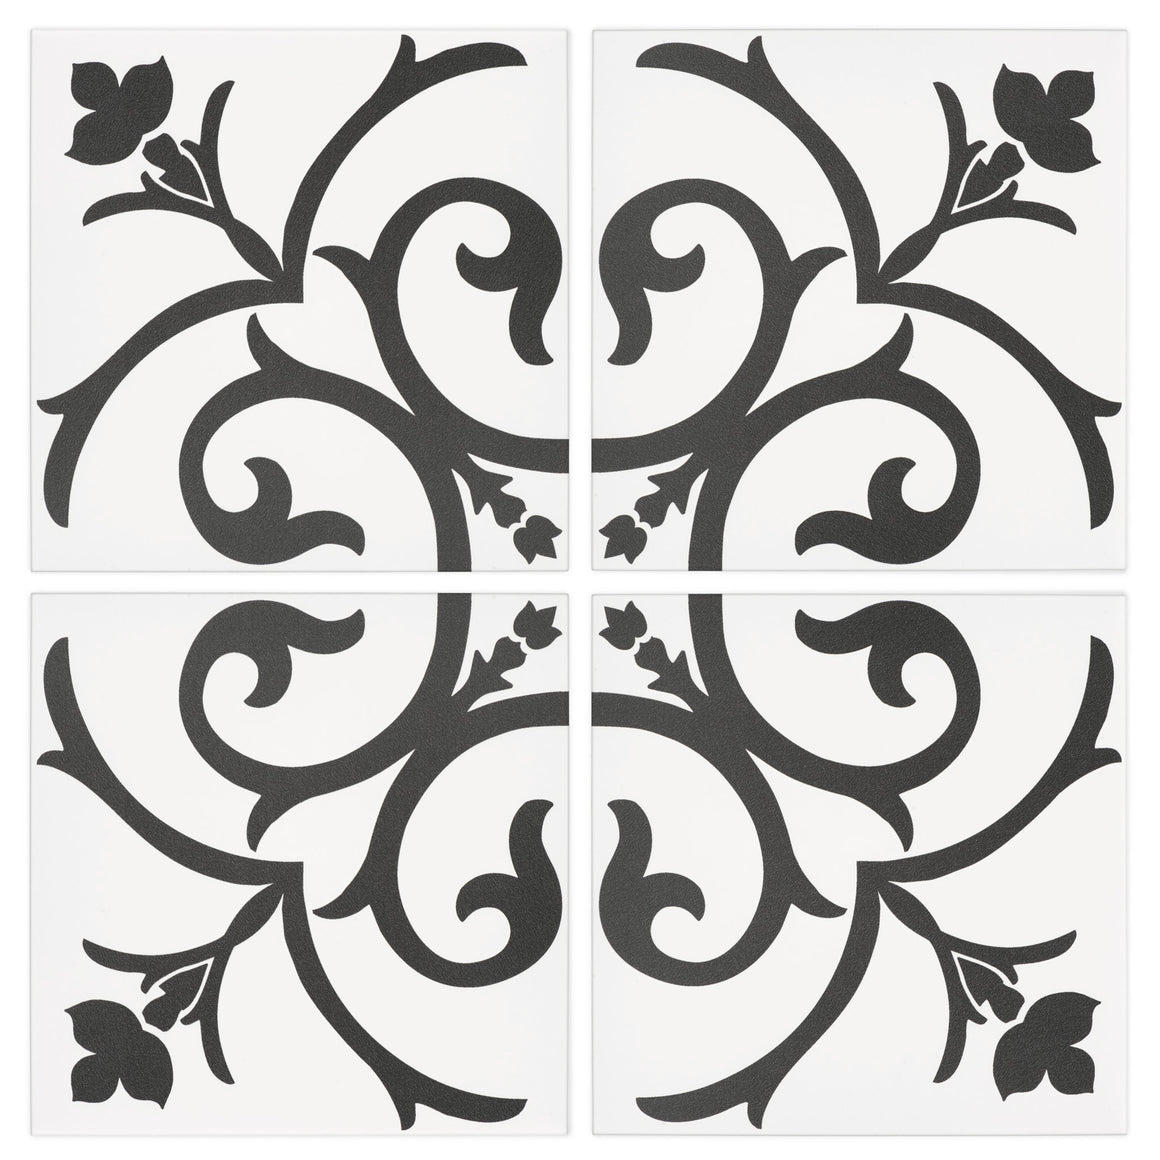 Damask Black and White vintage glossy porcelain decorative pattern tile for residential and commercial dining room floor and wall imported from Portugal, Kerion Décor Classic A Noir available from TilesInspired Canada's Online Tile Store delivering across Ontario and Quebec, including Toronto, Montreal, Ottawa, London, Windsor, Kitchener, Muskoka, Barrie, Kingston, Hamilton, and Niagara renovation idea